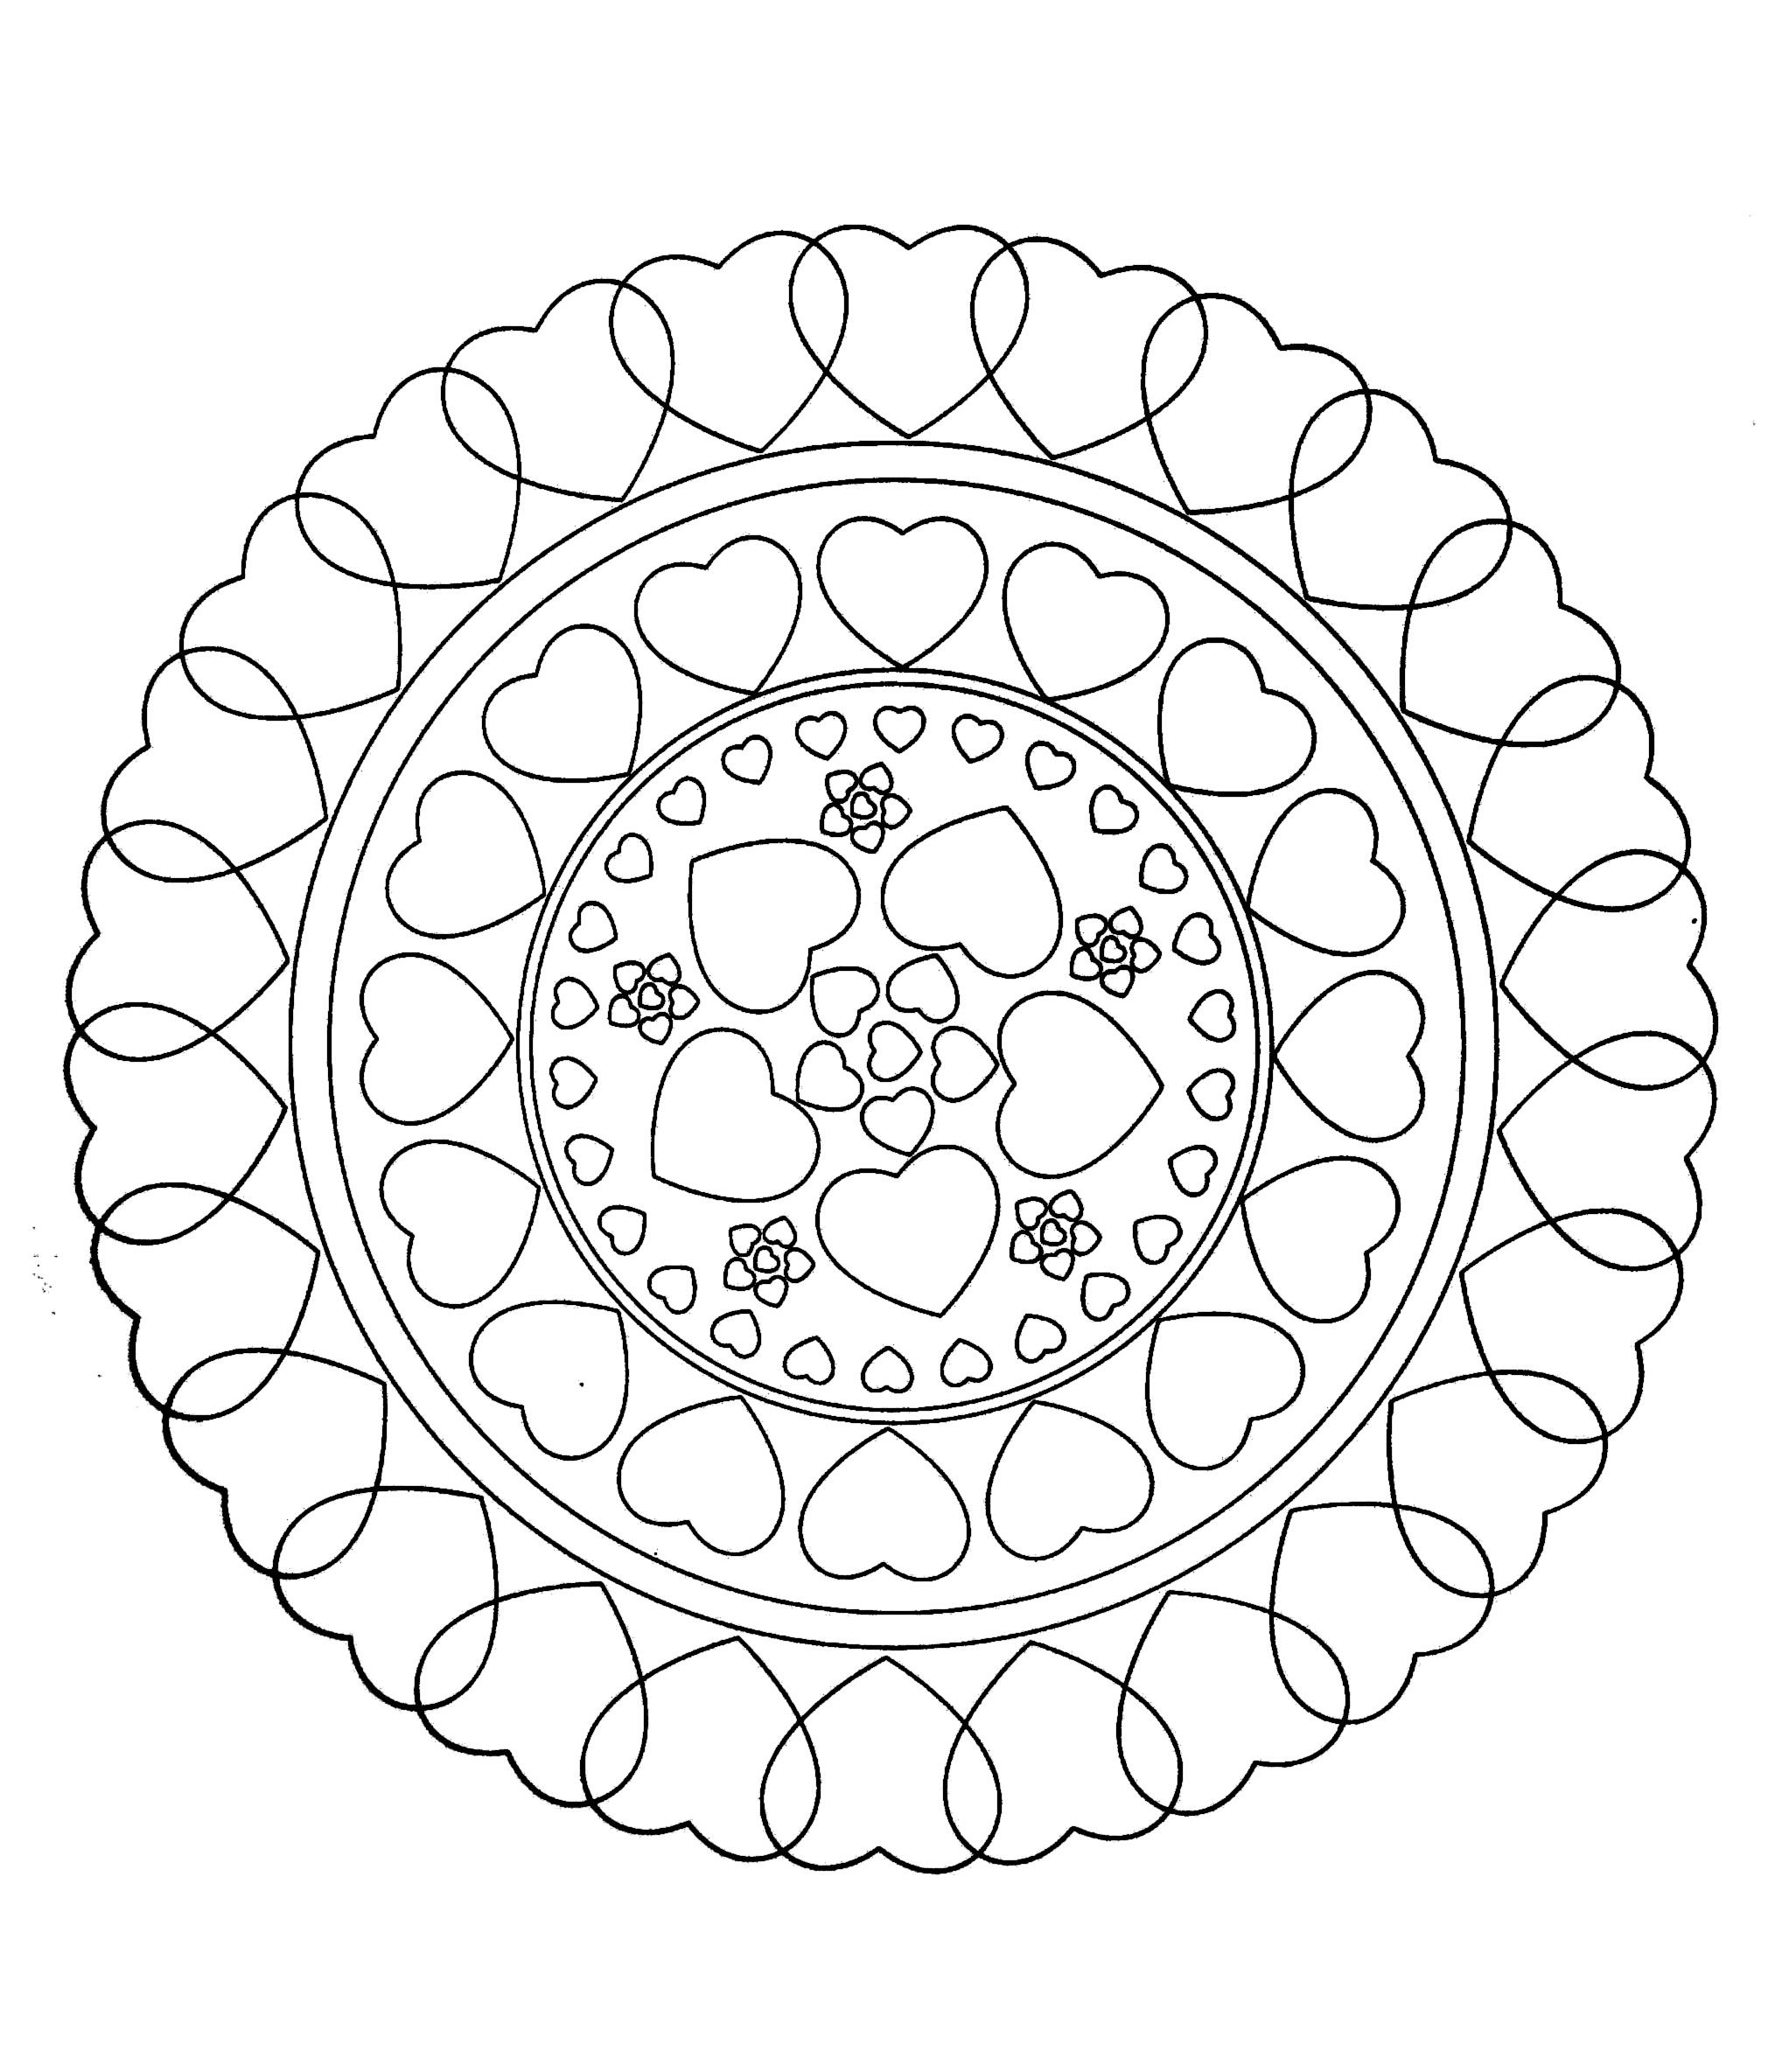 To print this free coloring page «free-mandala-to-color-hearts-love ...